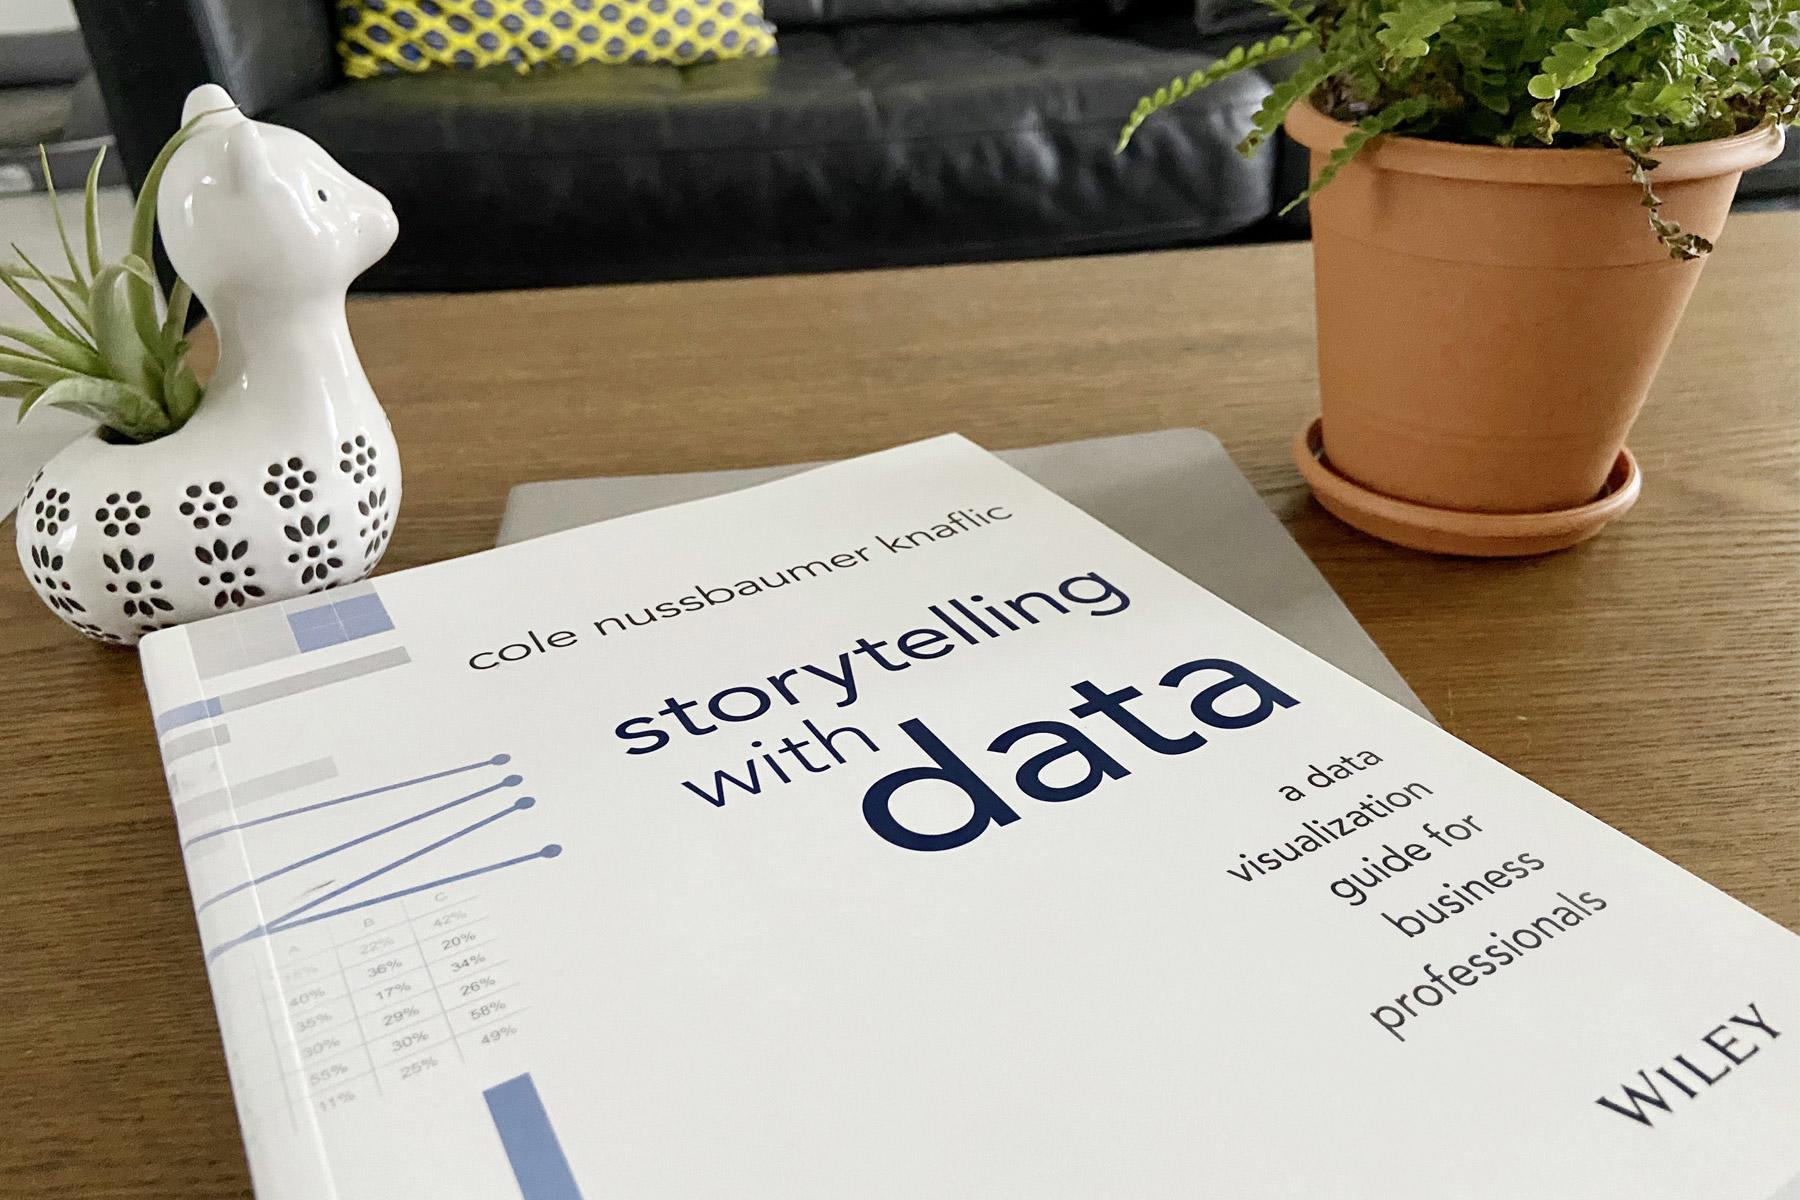 Storytelling with Data - February 2020 Challenge